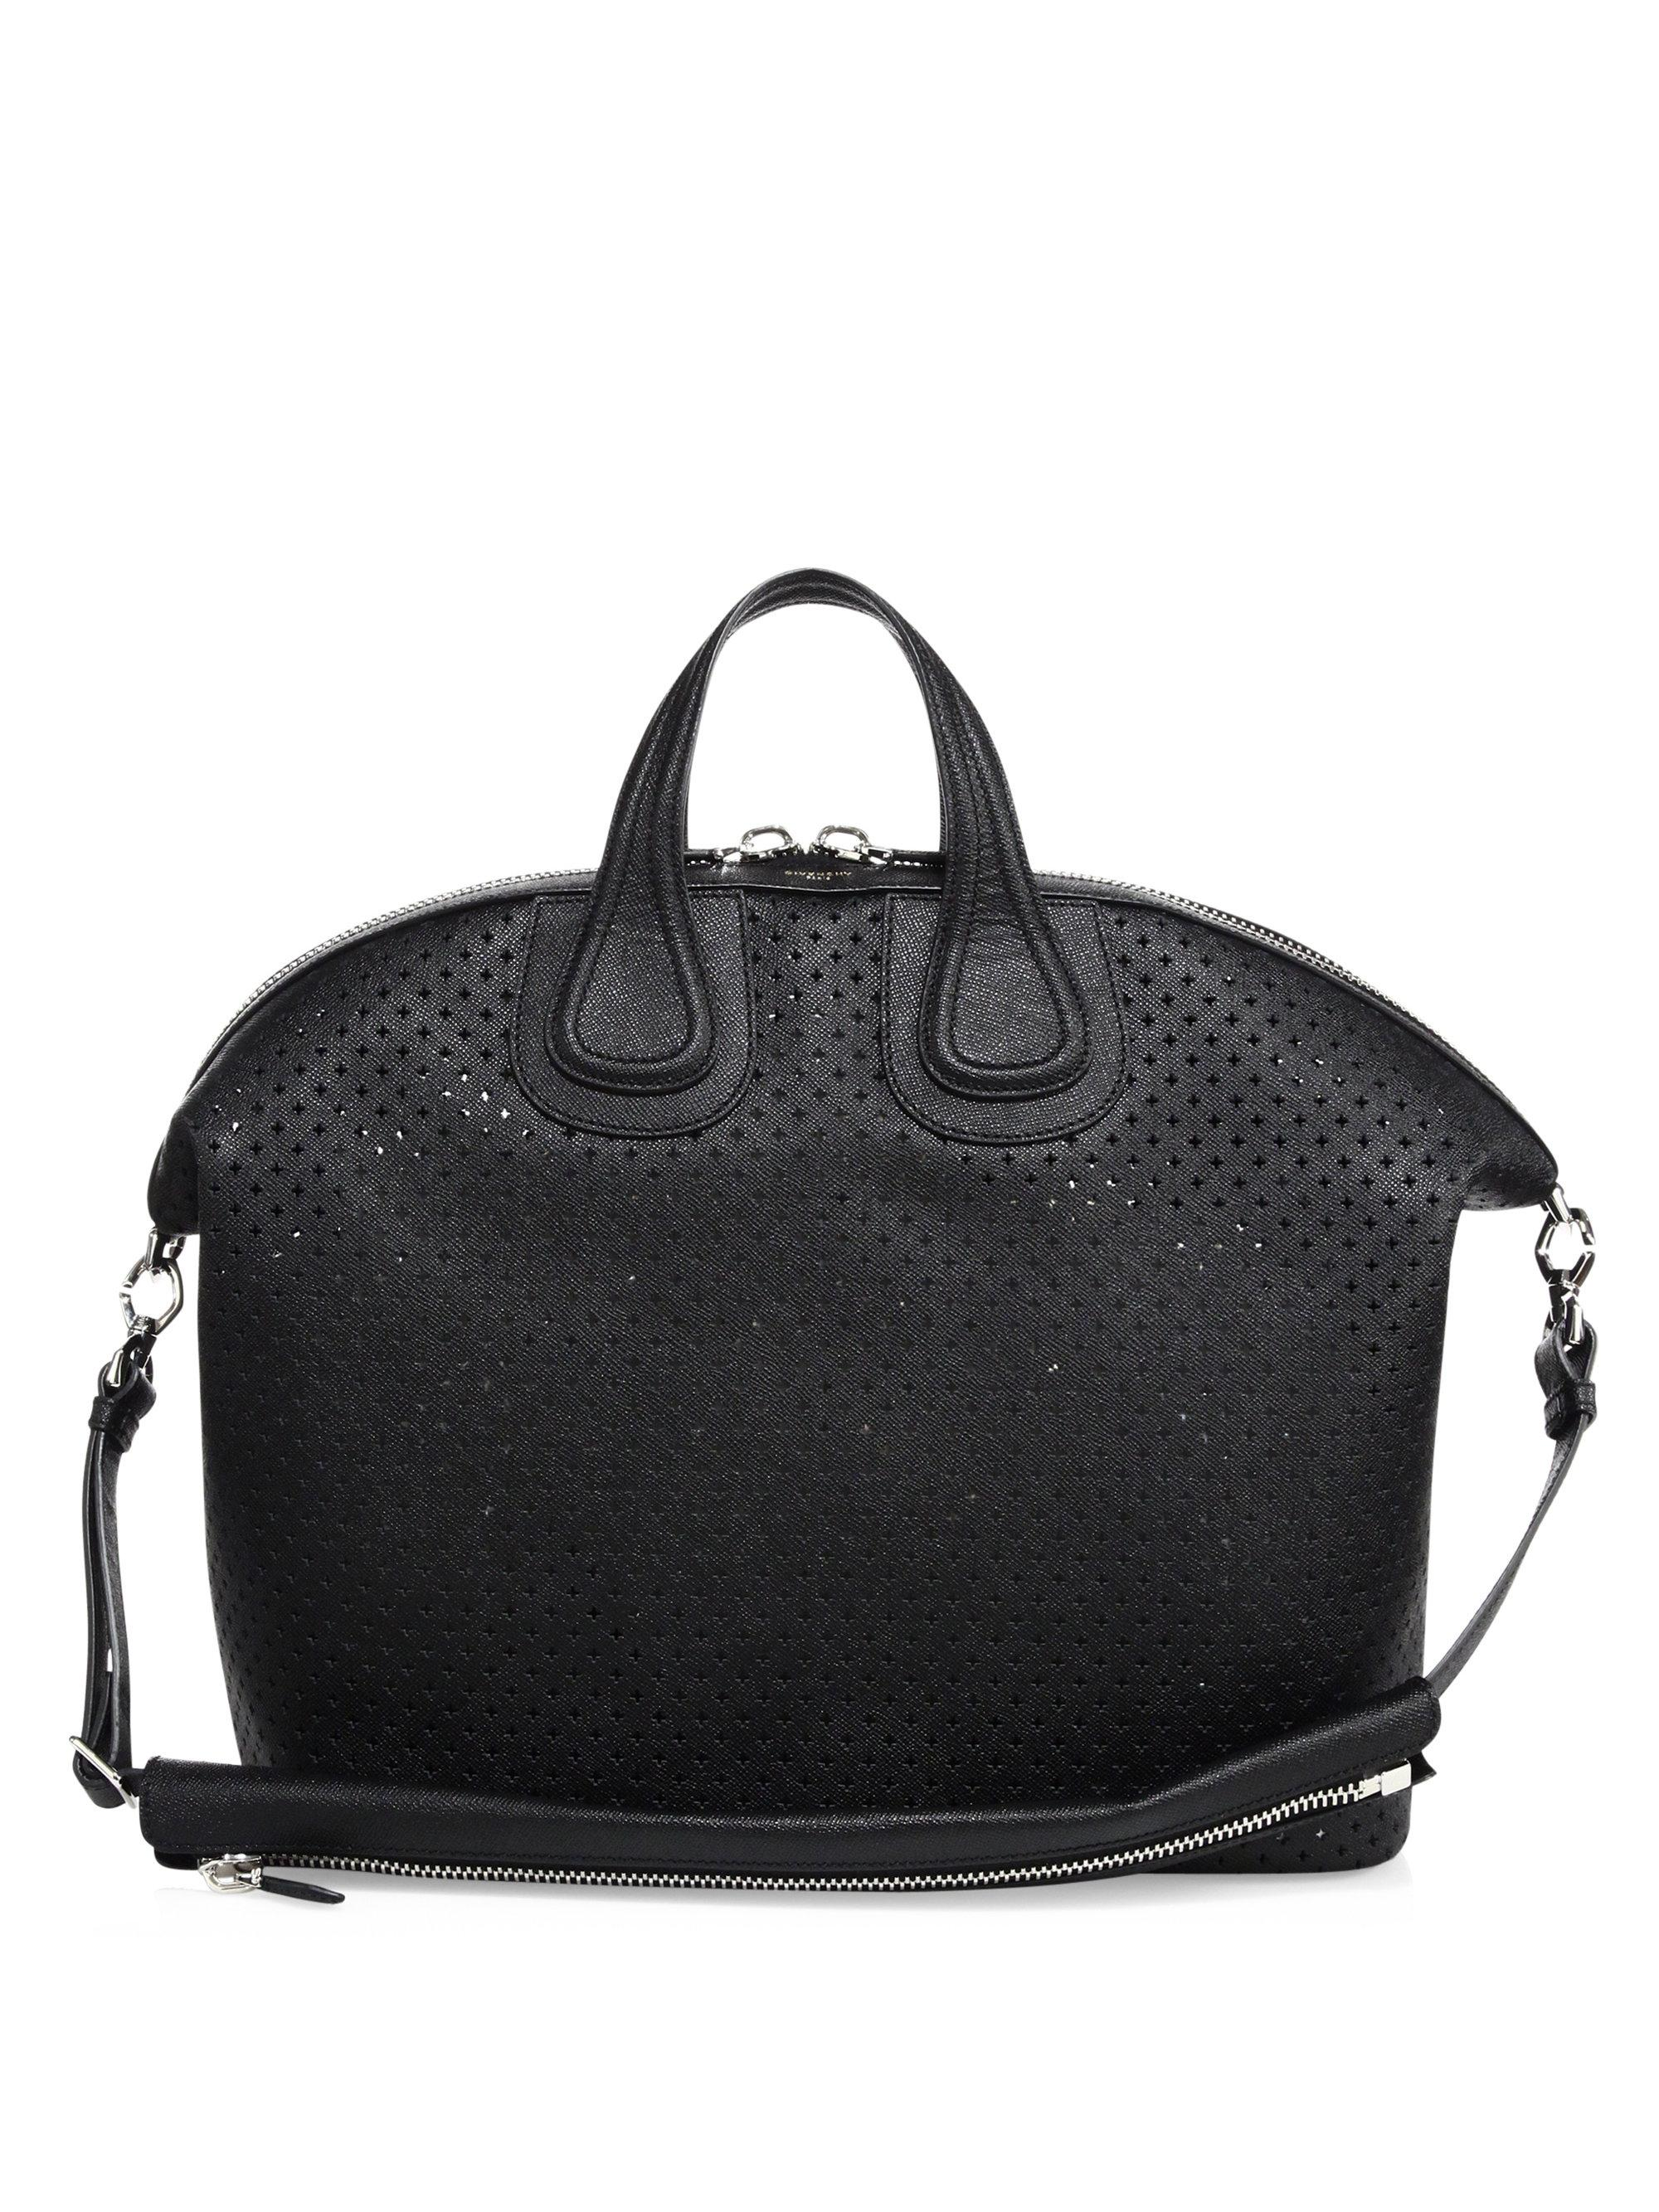 Lyst - Givenchy Nightingale Perforated Leather Bag in Black for Men 1170d2f0bb9b9